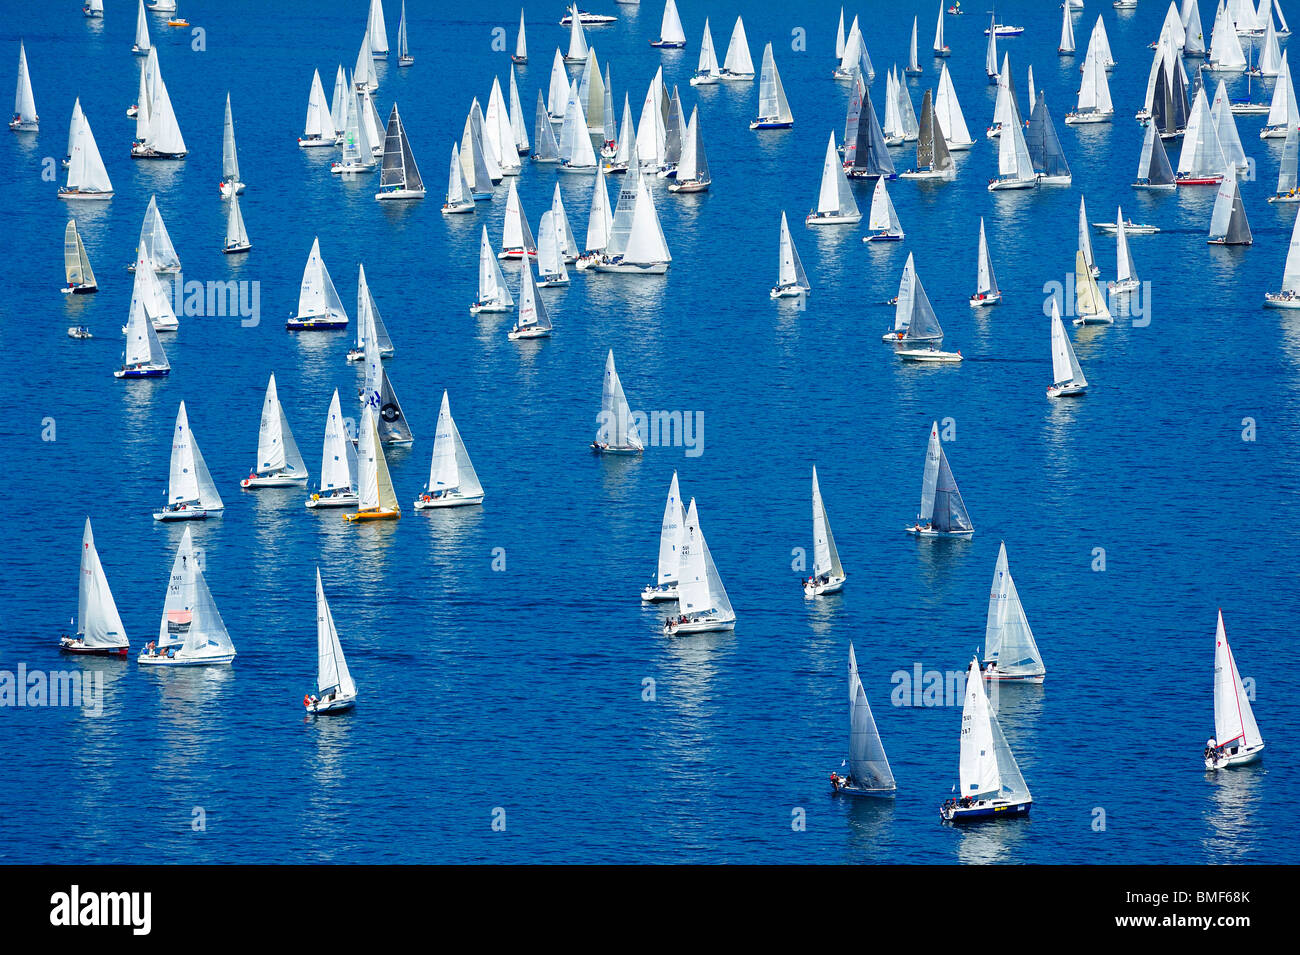 Start of the 2009 Bol d'Or sailing race, on Lac Léman, Geneva. Taken from a high viewpoint overlooking the lake Stock Photo